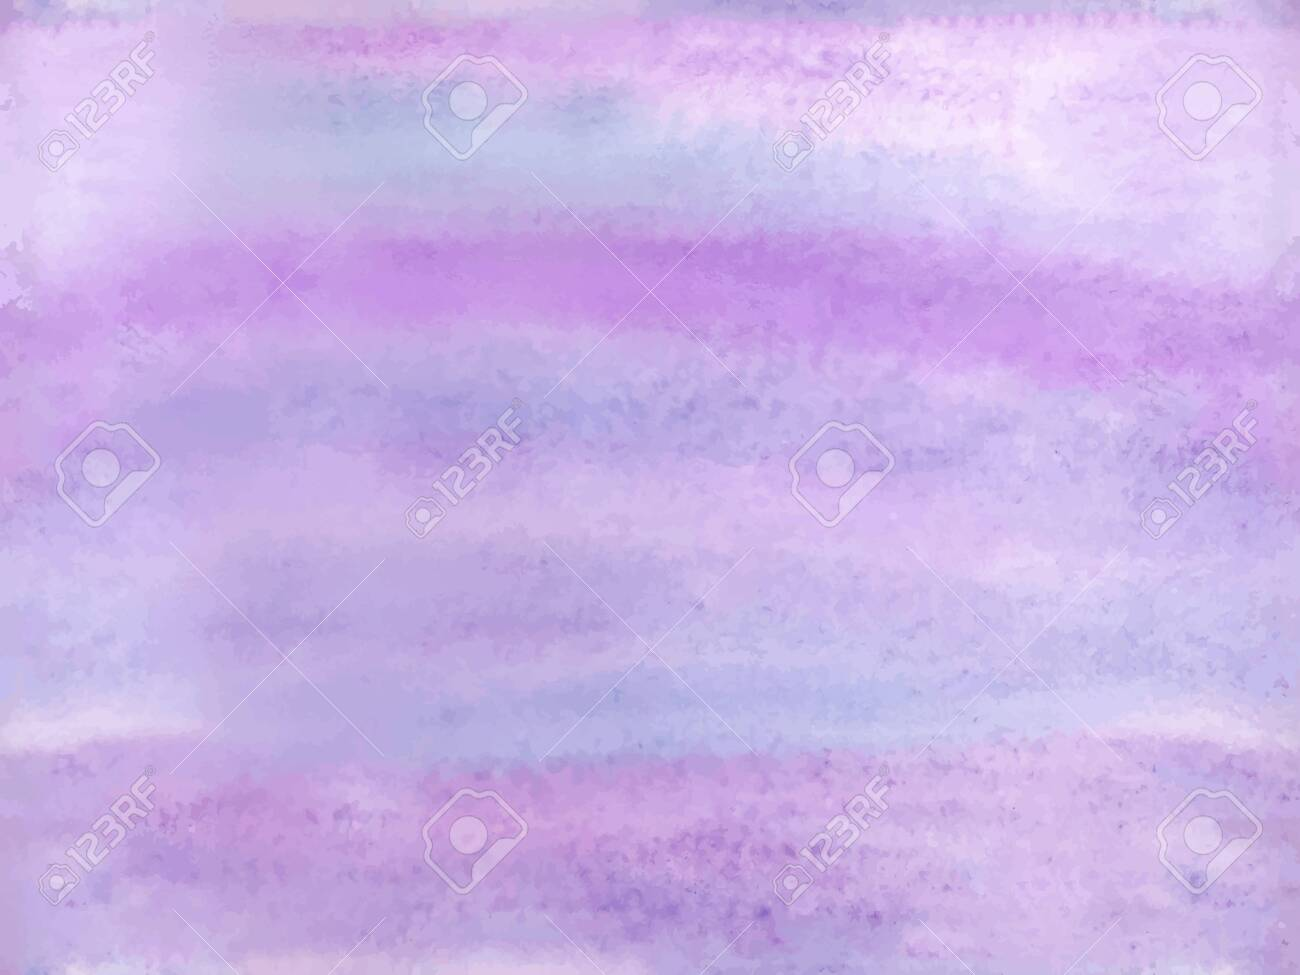 Seamless Pattern Violet And Pink Ombre Watercolor Background 1300x975